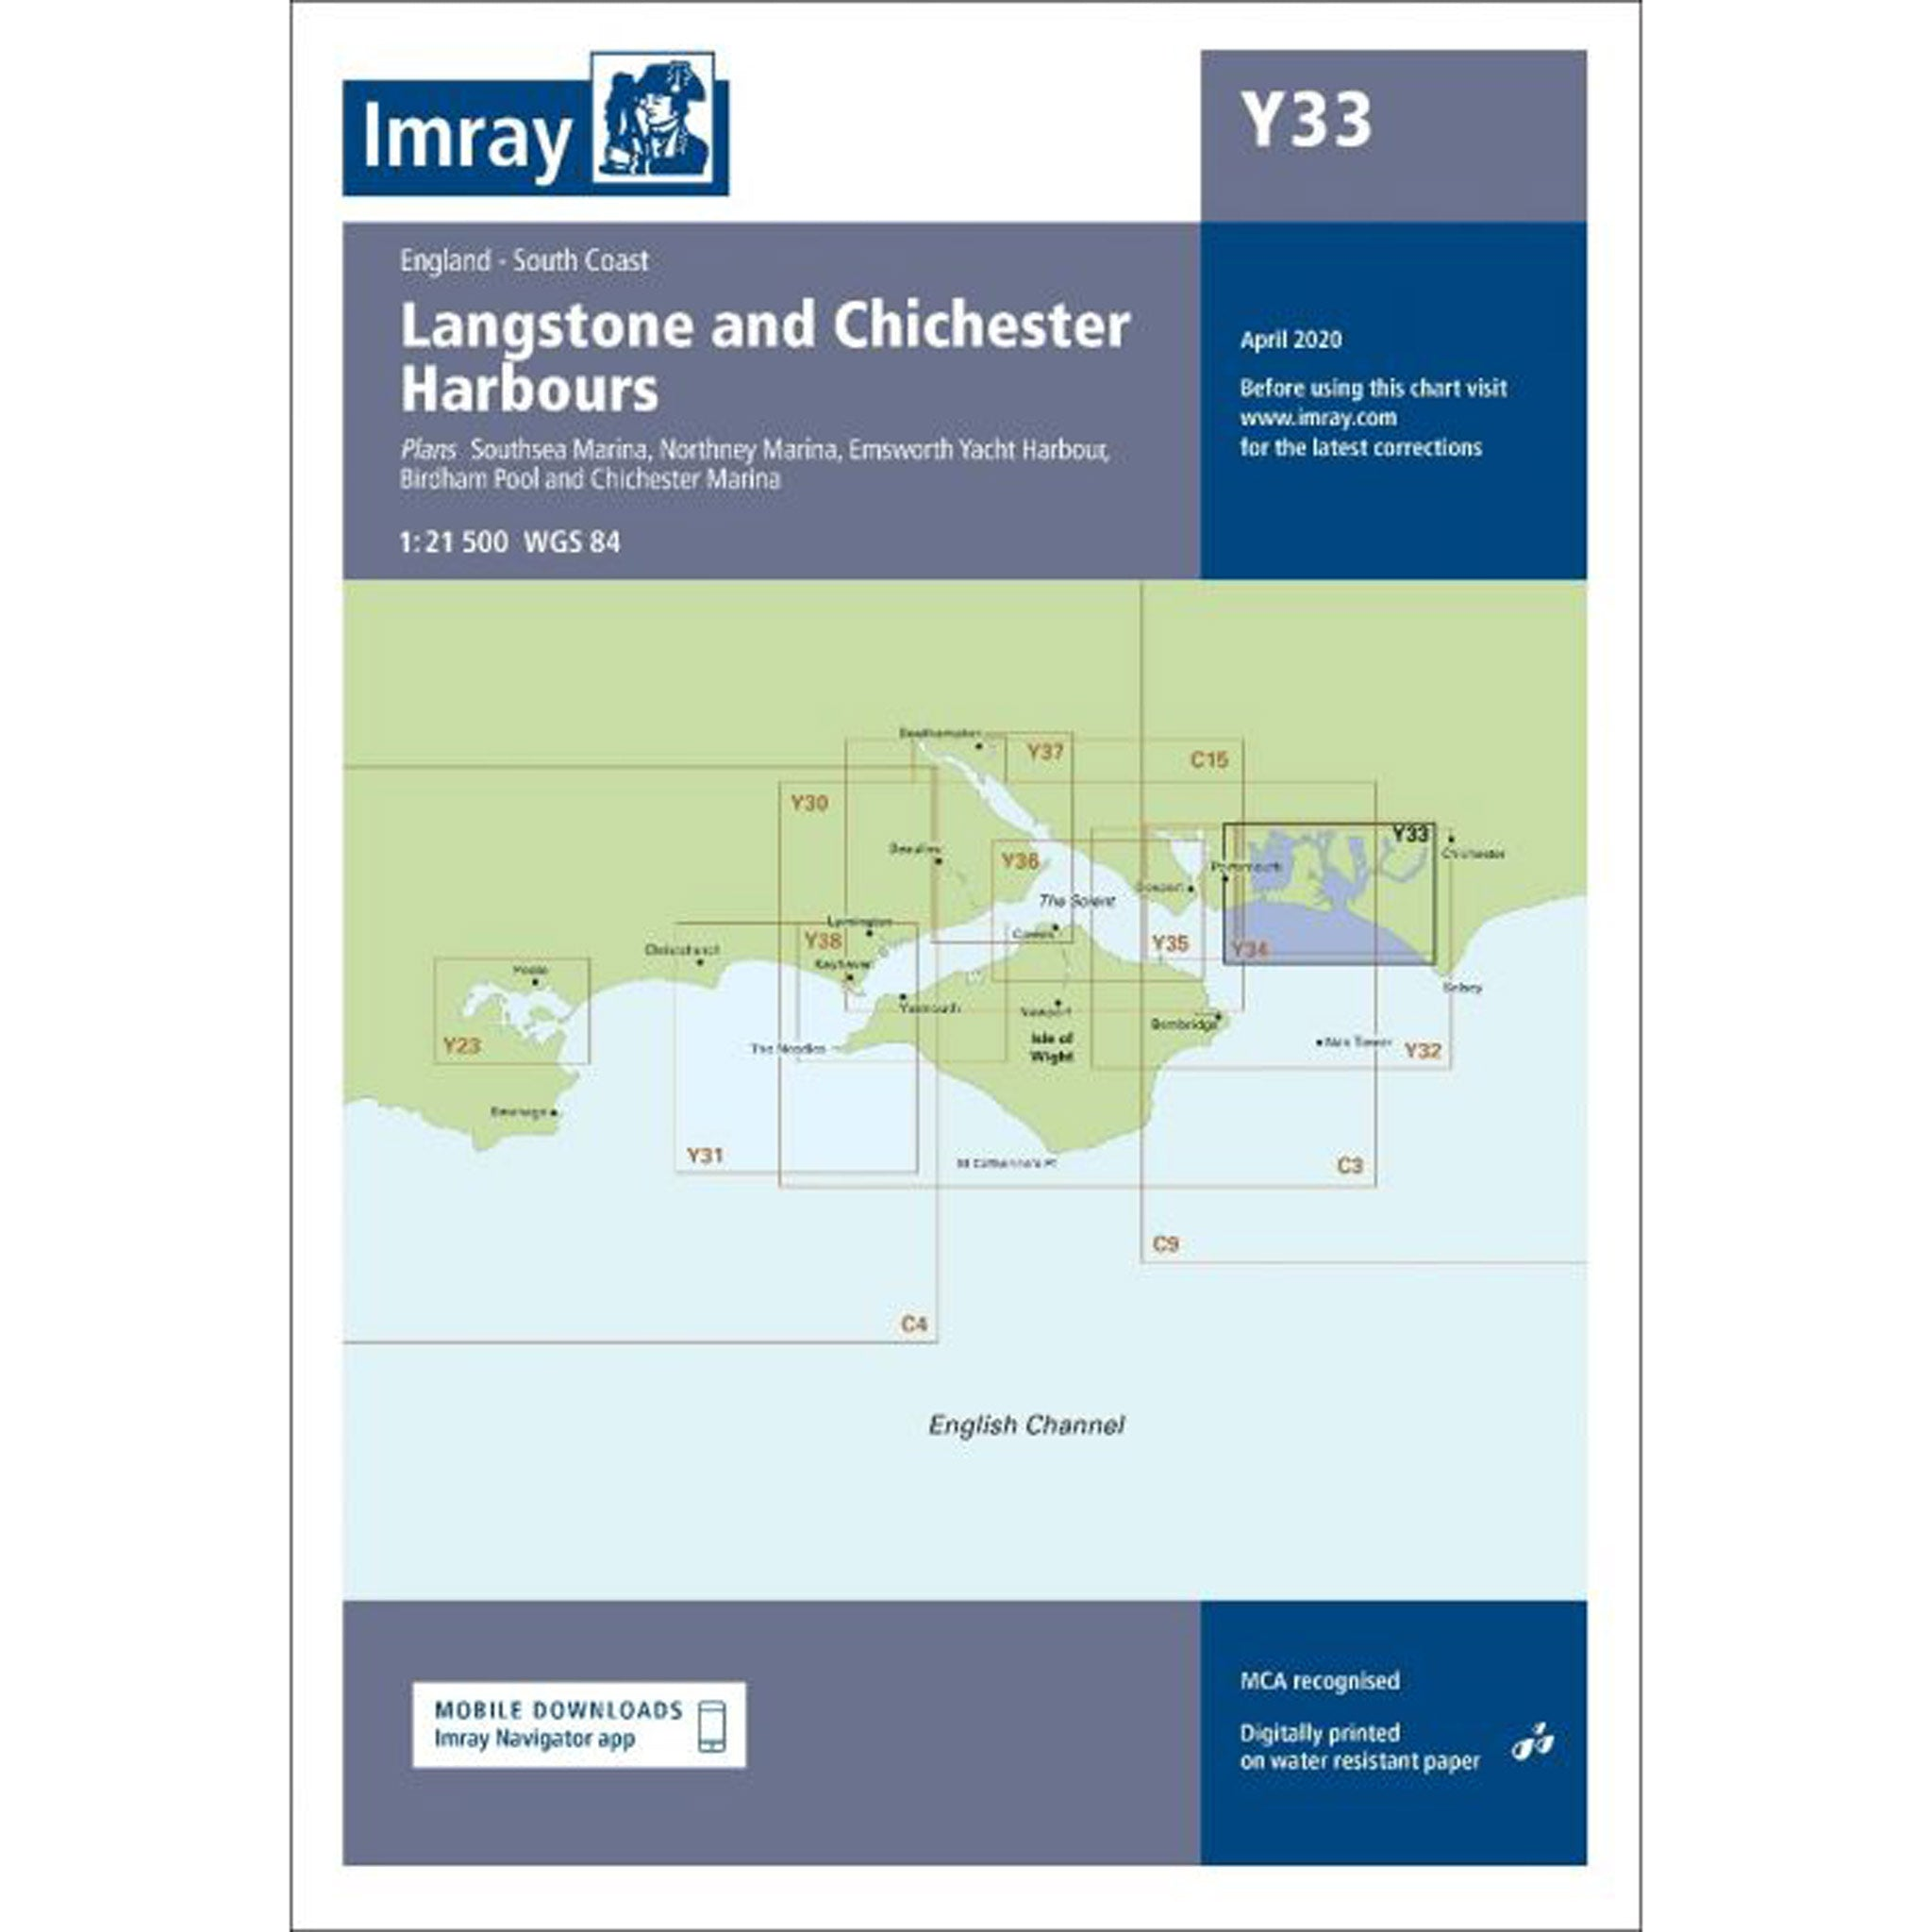 Imray Y33 Langstone and Chichester Harbour